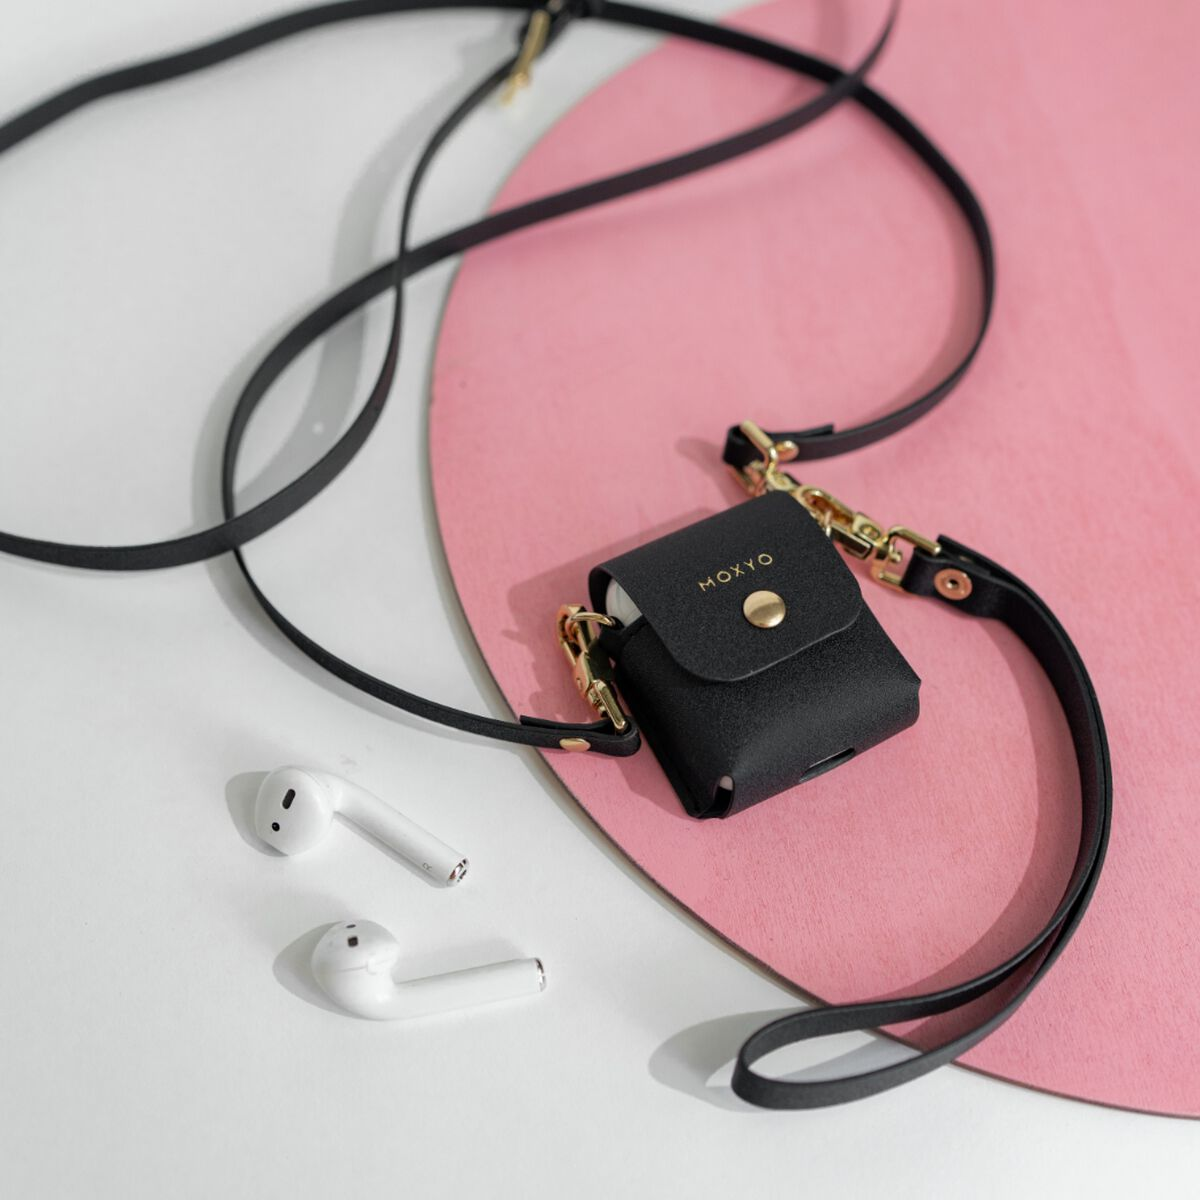 AirPods Case with Crossbody and Wrist Straps (Black) - Original AirPods